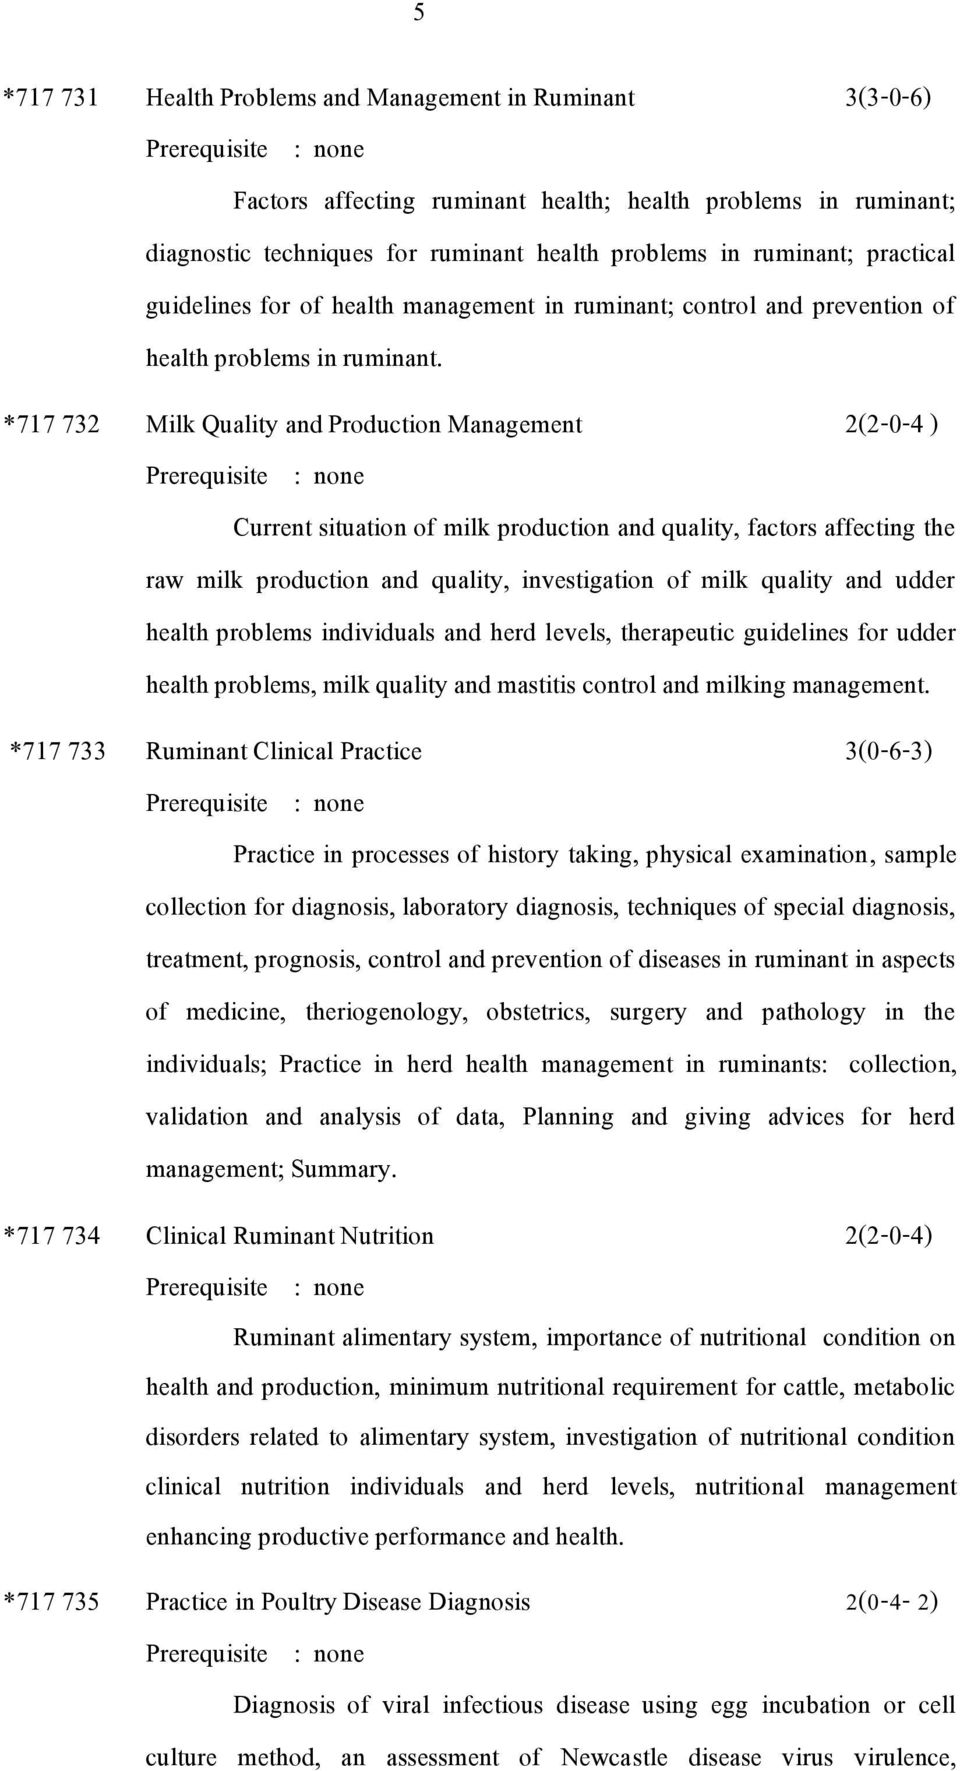 *717 732 Milk Quality and Production Management 2(2-0-4 ) Current situation of milk production and quality, factors affecting the raw milk production and quality, investigation of milk quality and